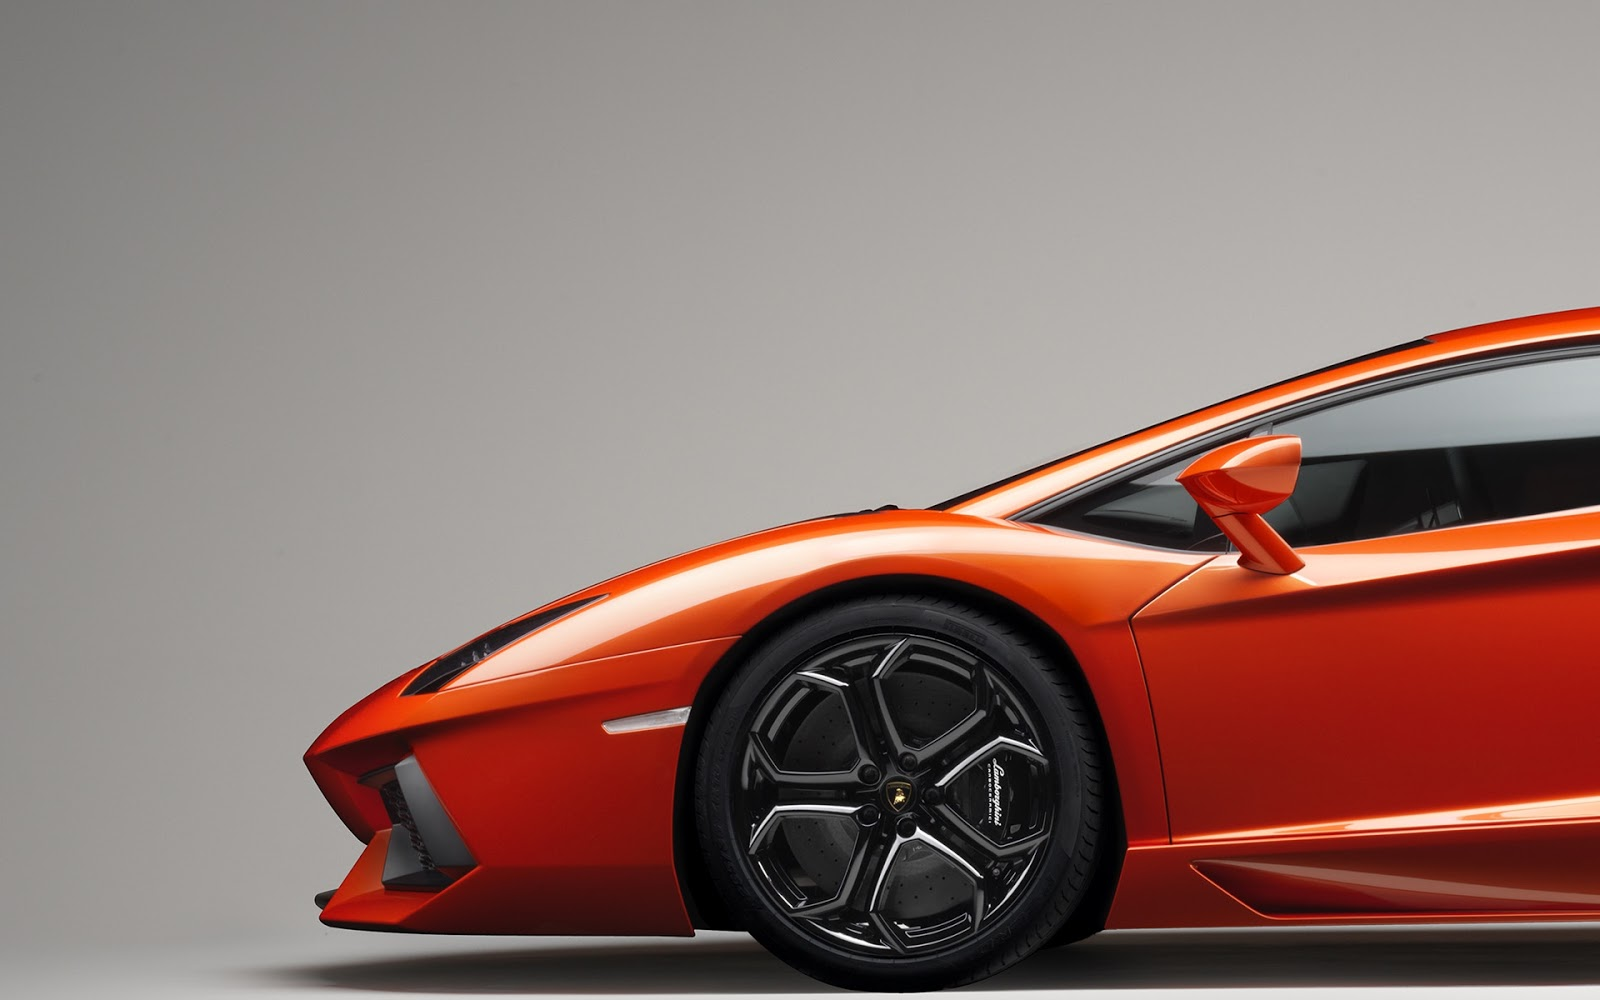 Luxury Lamborghini Cars Lamborghini Aventador Wallpaper Hd 1600x1000